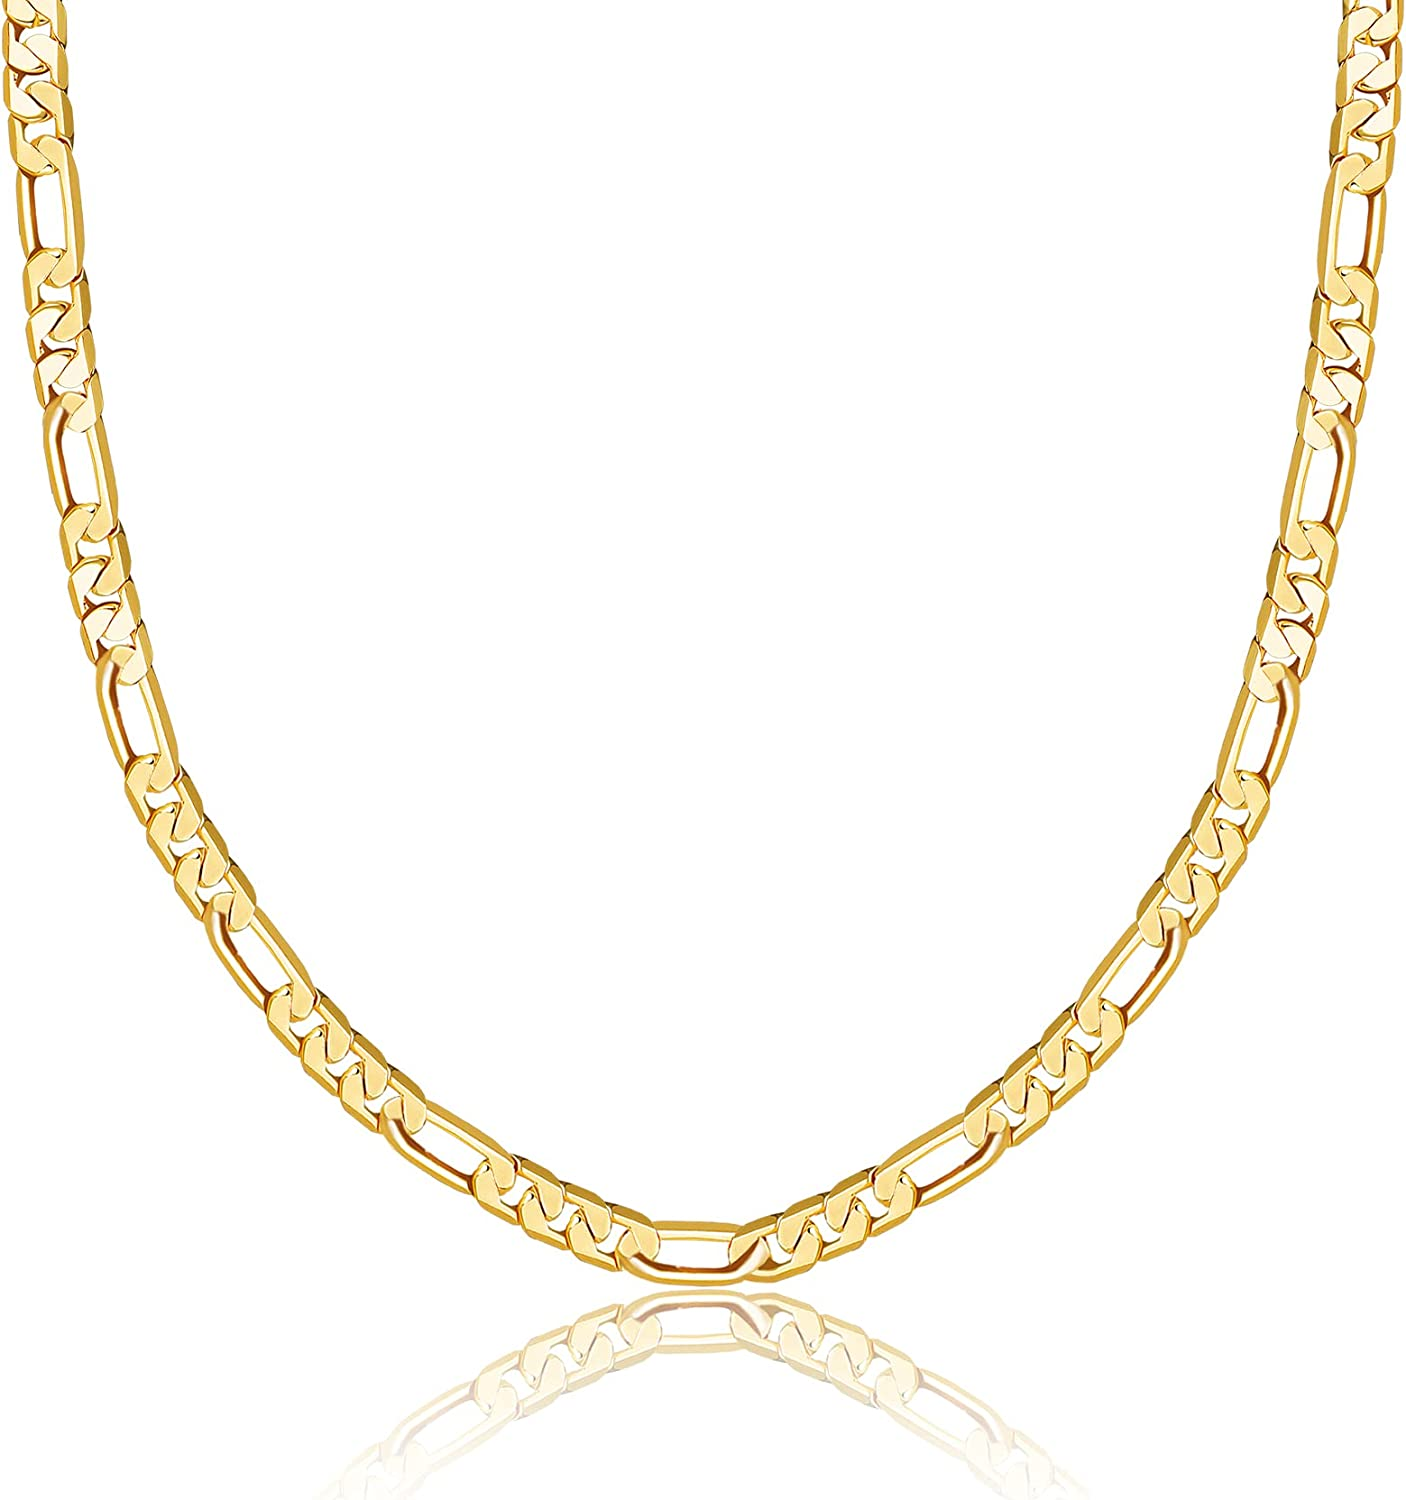 Gold Chain Necklaces for Women, 14K Gold Plated Dainty Paperclip Chain Cuban Link Chain Lock Pendant Coffee Bean Rope Chain Gold Necklace for Women Chunky Chain Necklace Jewelry Gifts